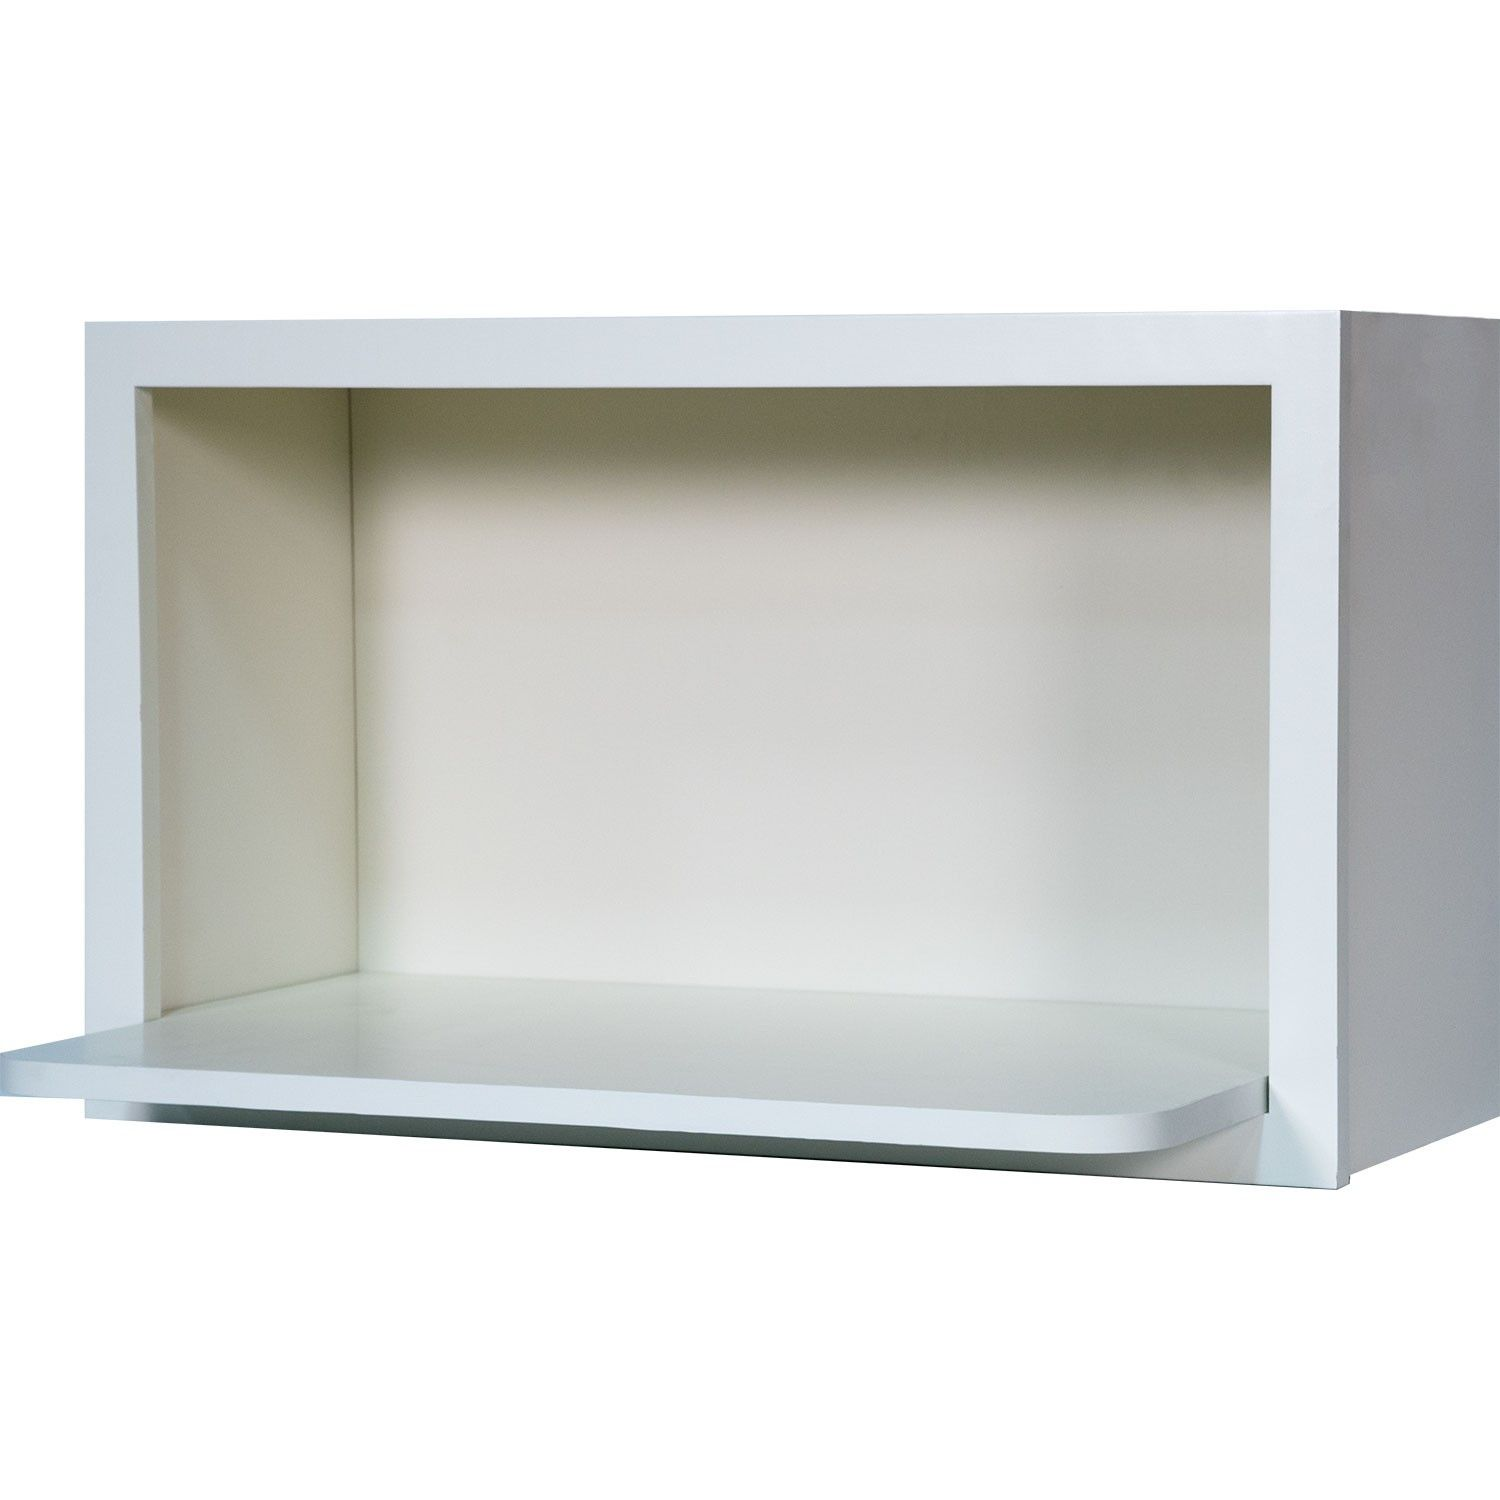 30 Inch Microwave Shelf Wall Cabinet In Shaker White 30 Microwave Wall Shelf Microwave Shelf Shelves